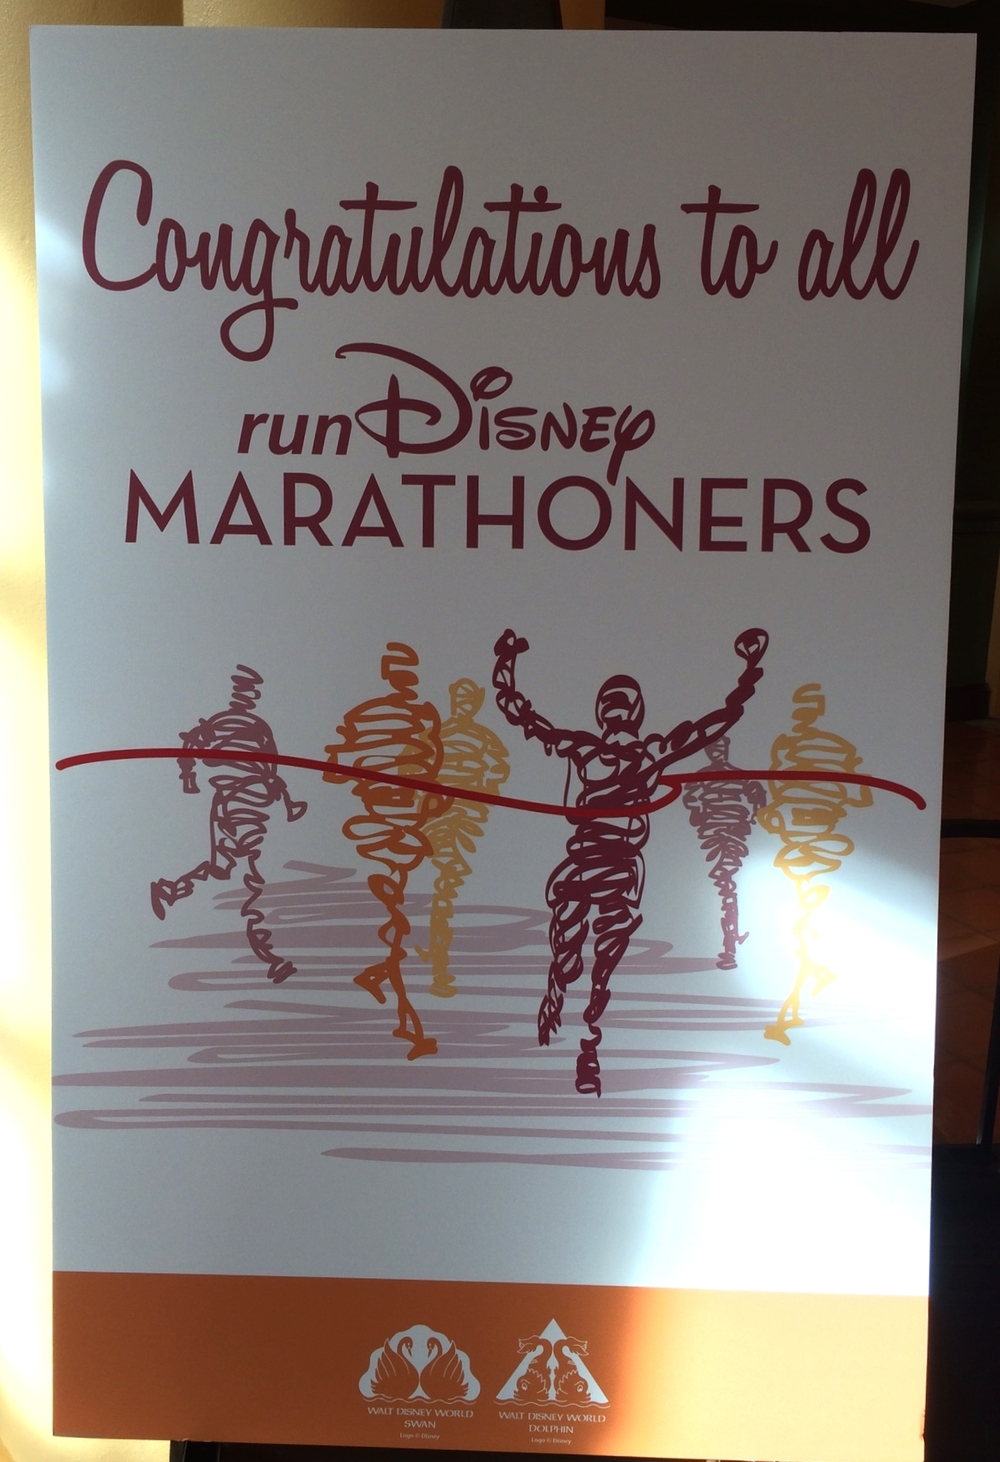 The hotel welcoming the runners!